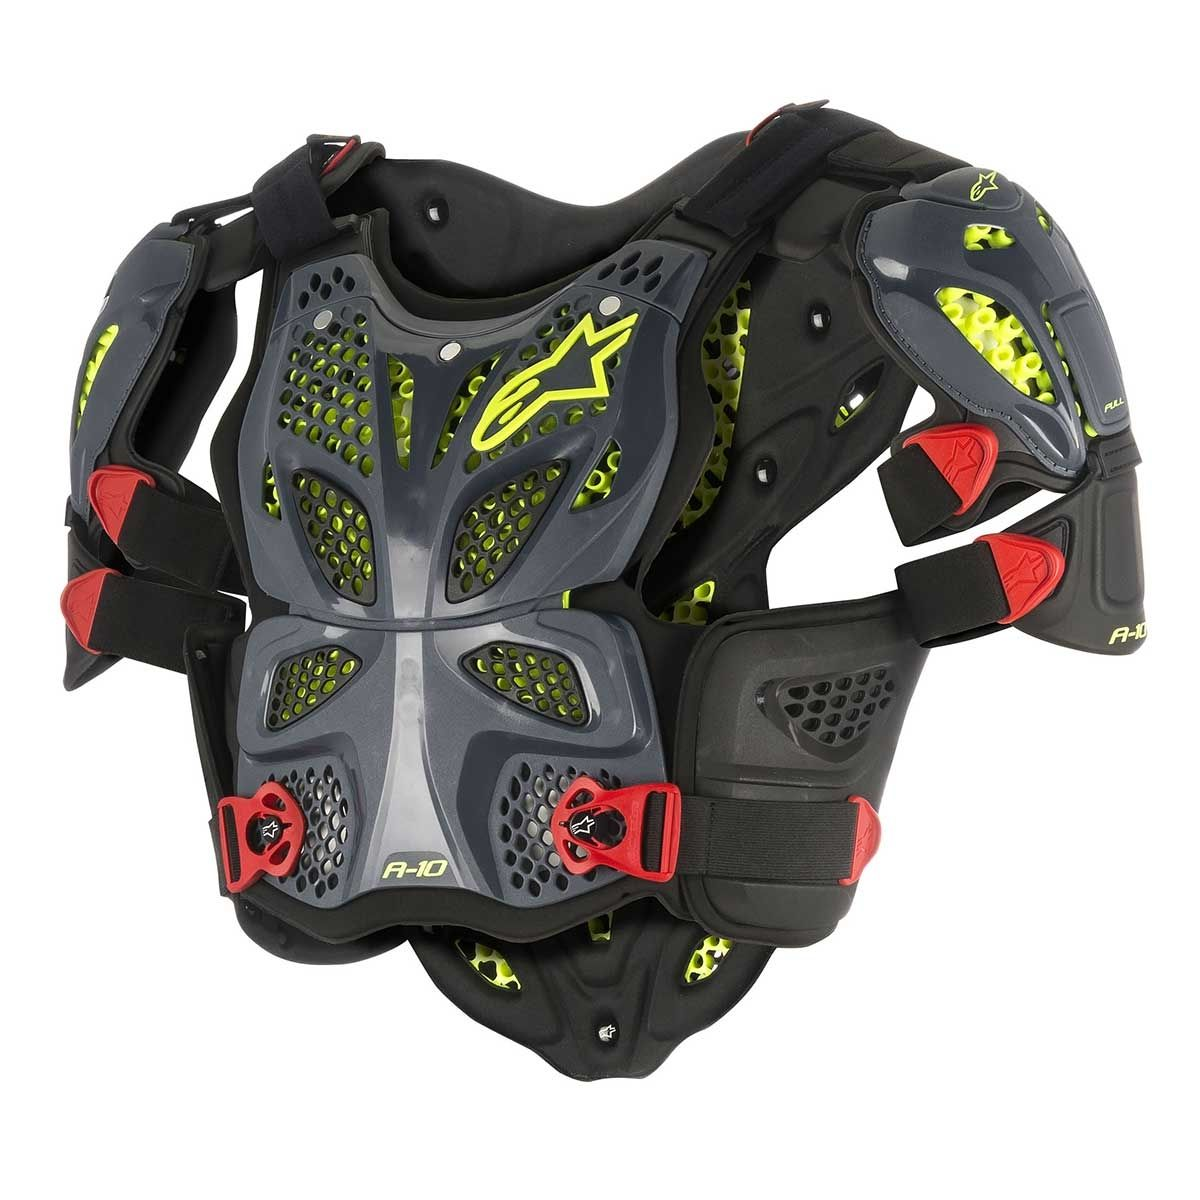 Alpinestars Body Protector A-10 Anthracite/Black/Red